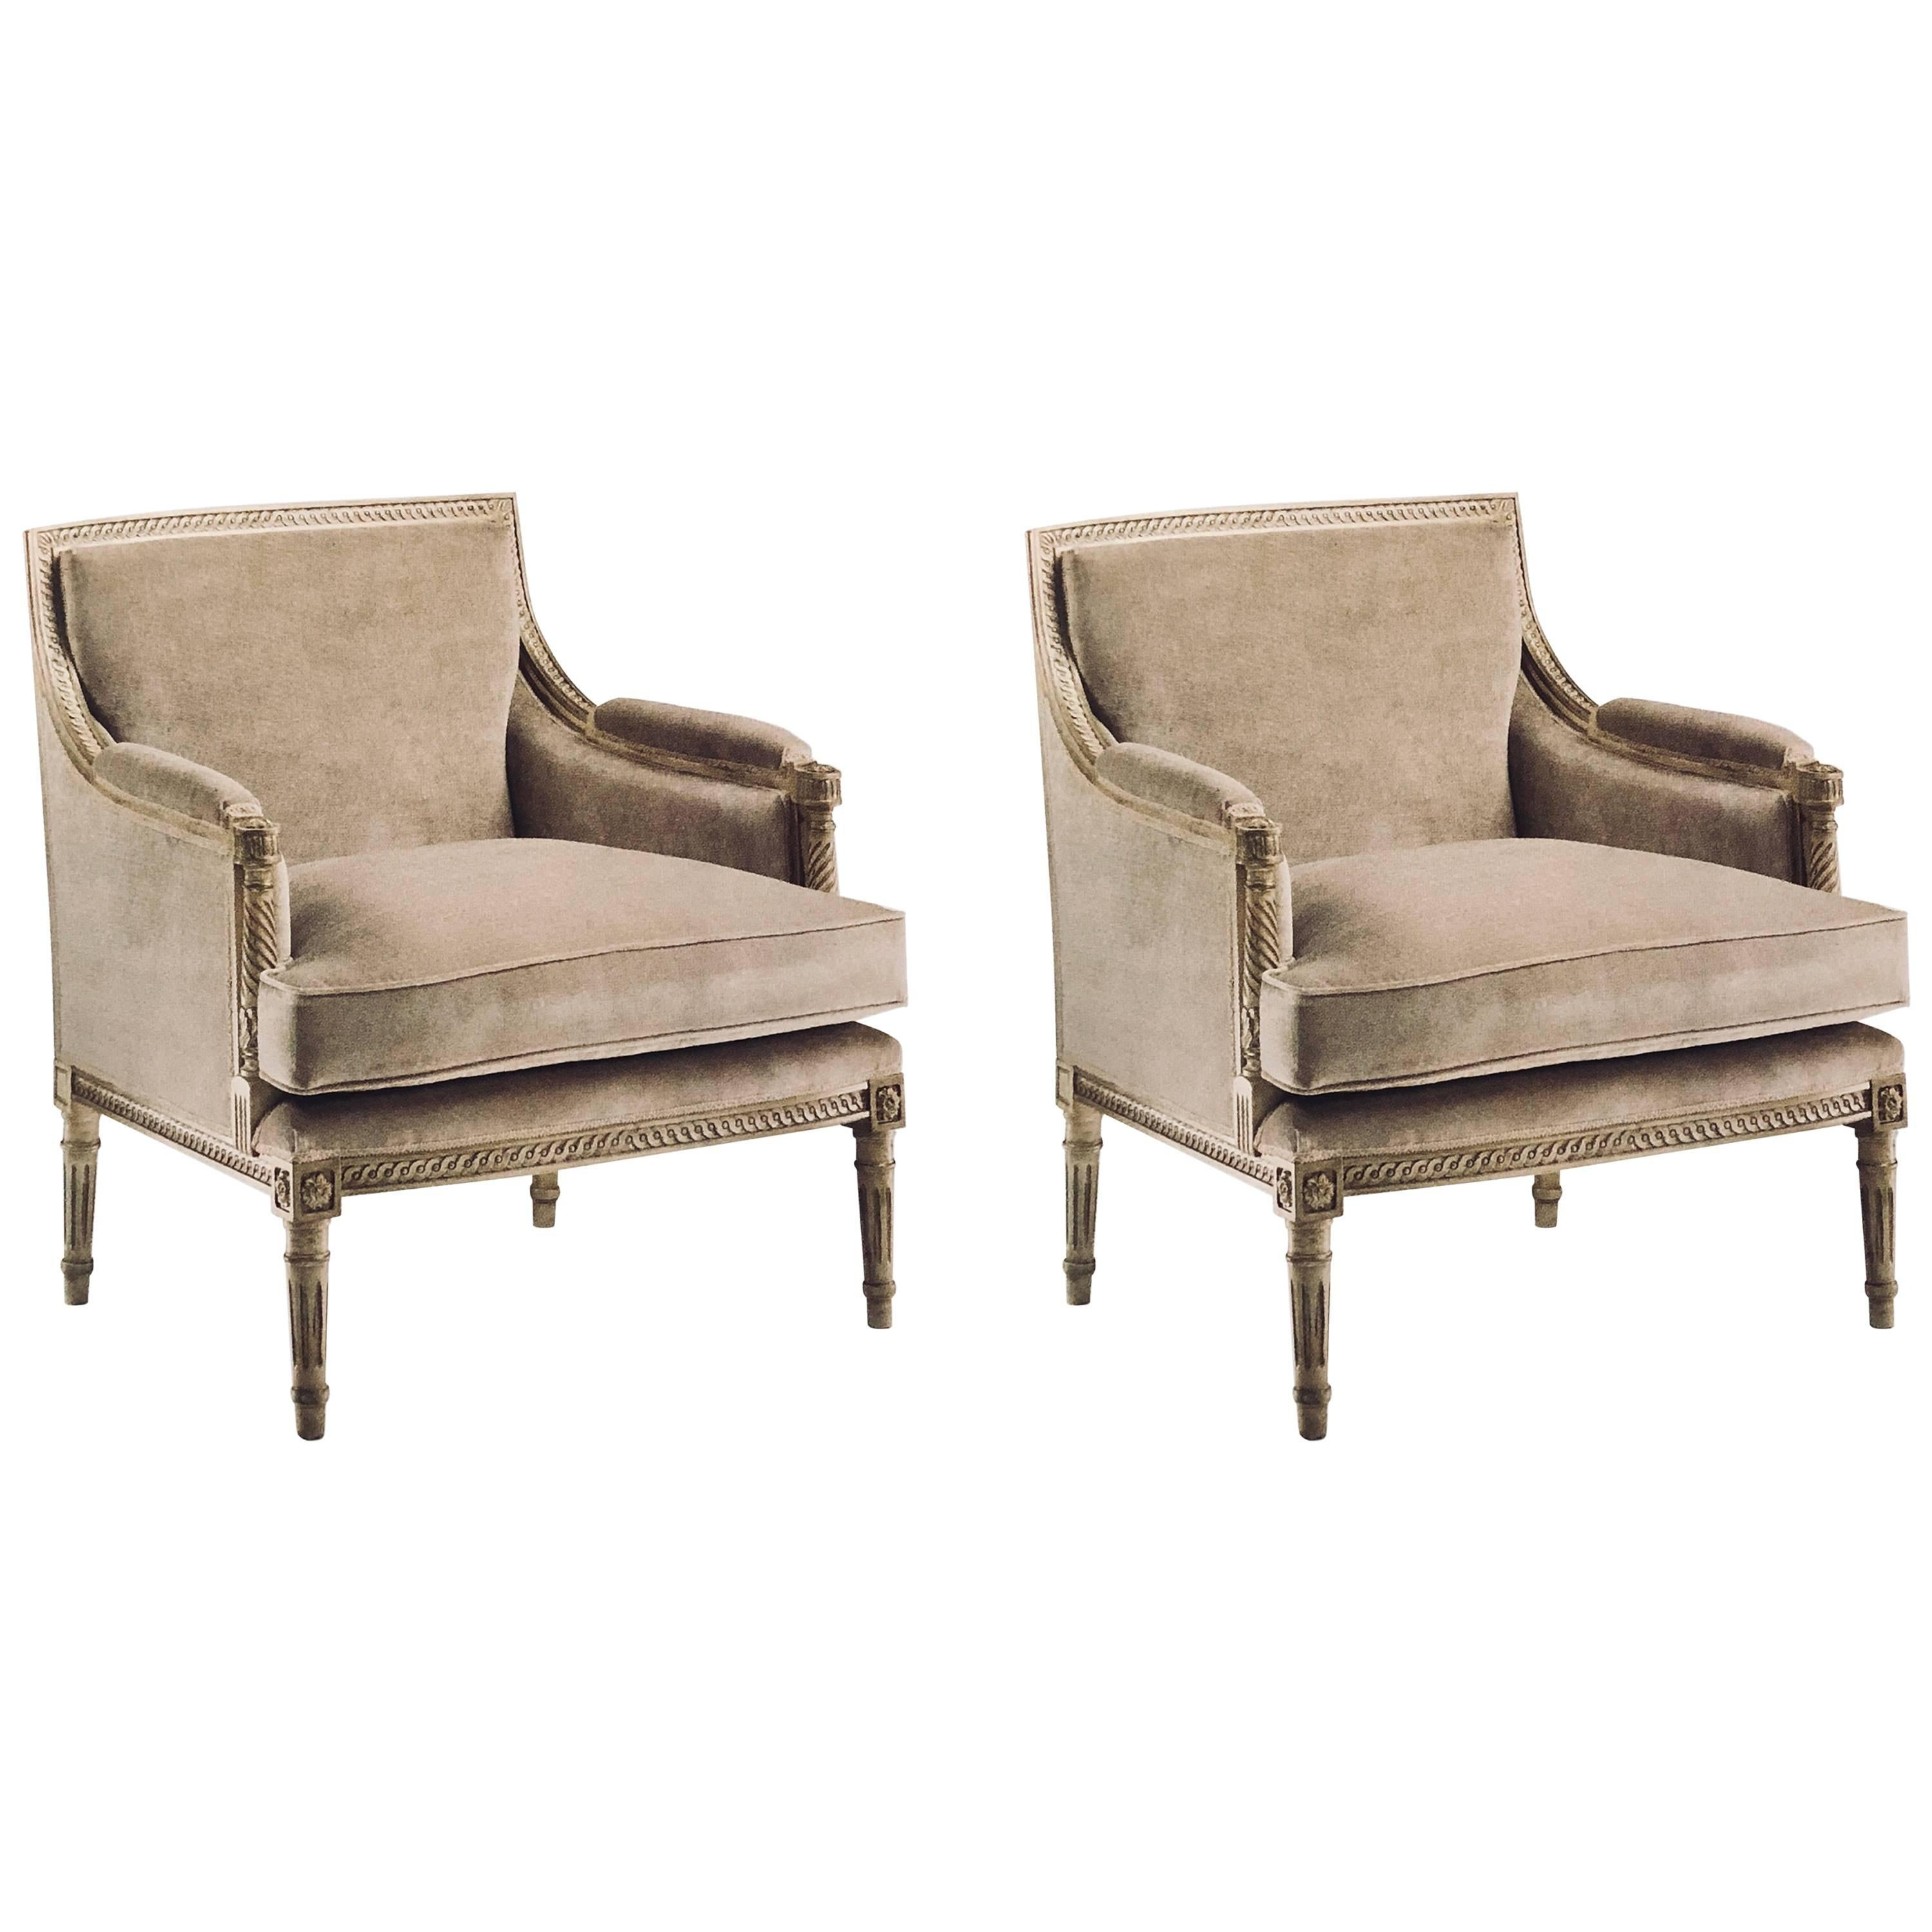 Pair of italian white and gold leaf louis xvi style lounge chairs maison jansen for sale at 1stdibs